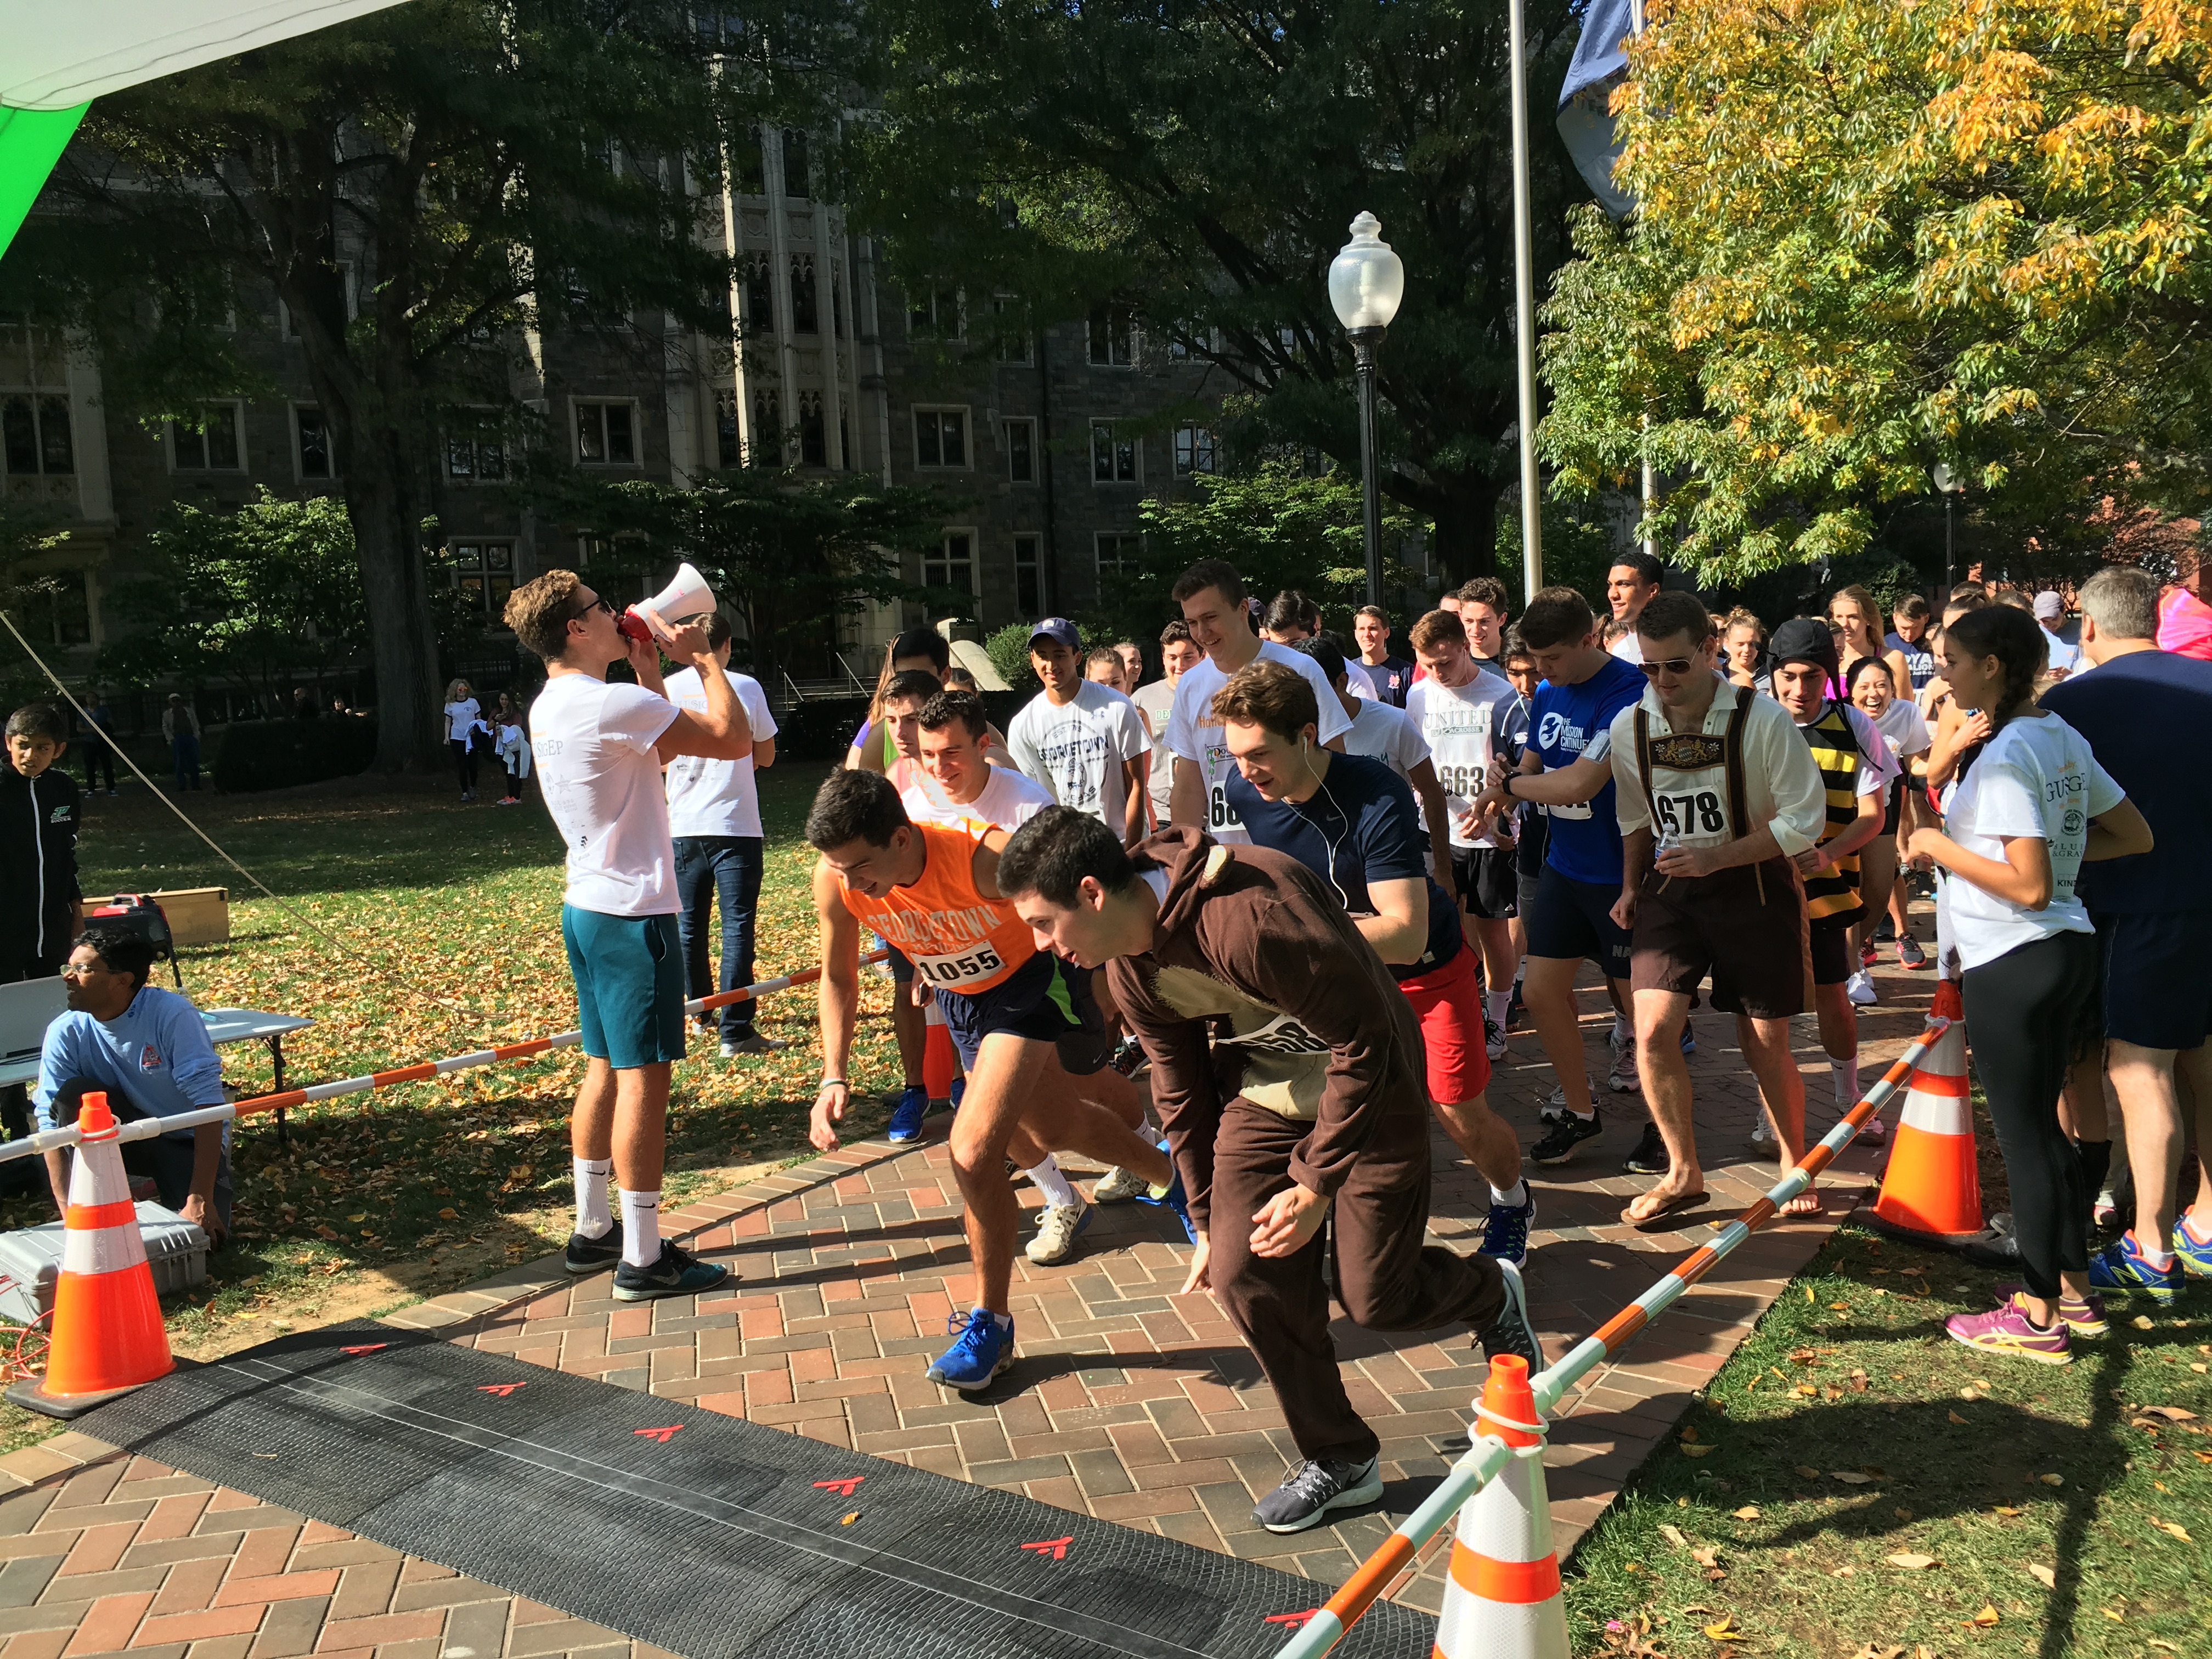 COLIN MALONEY/THE HOYA One hundred fifty-five runners took part in a 5K marathon sponsored by Sigma Phi Epsilon to raise almost $9,000 for Doorways for Women and Family, a charity that supports victims of domestic violence.